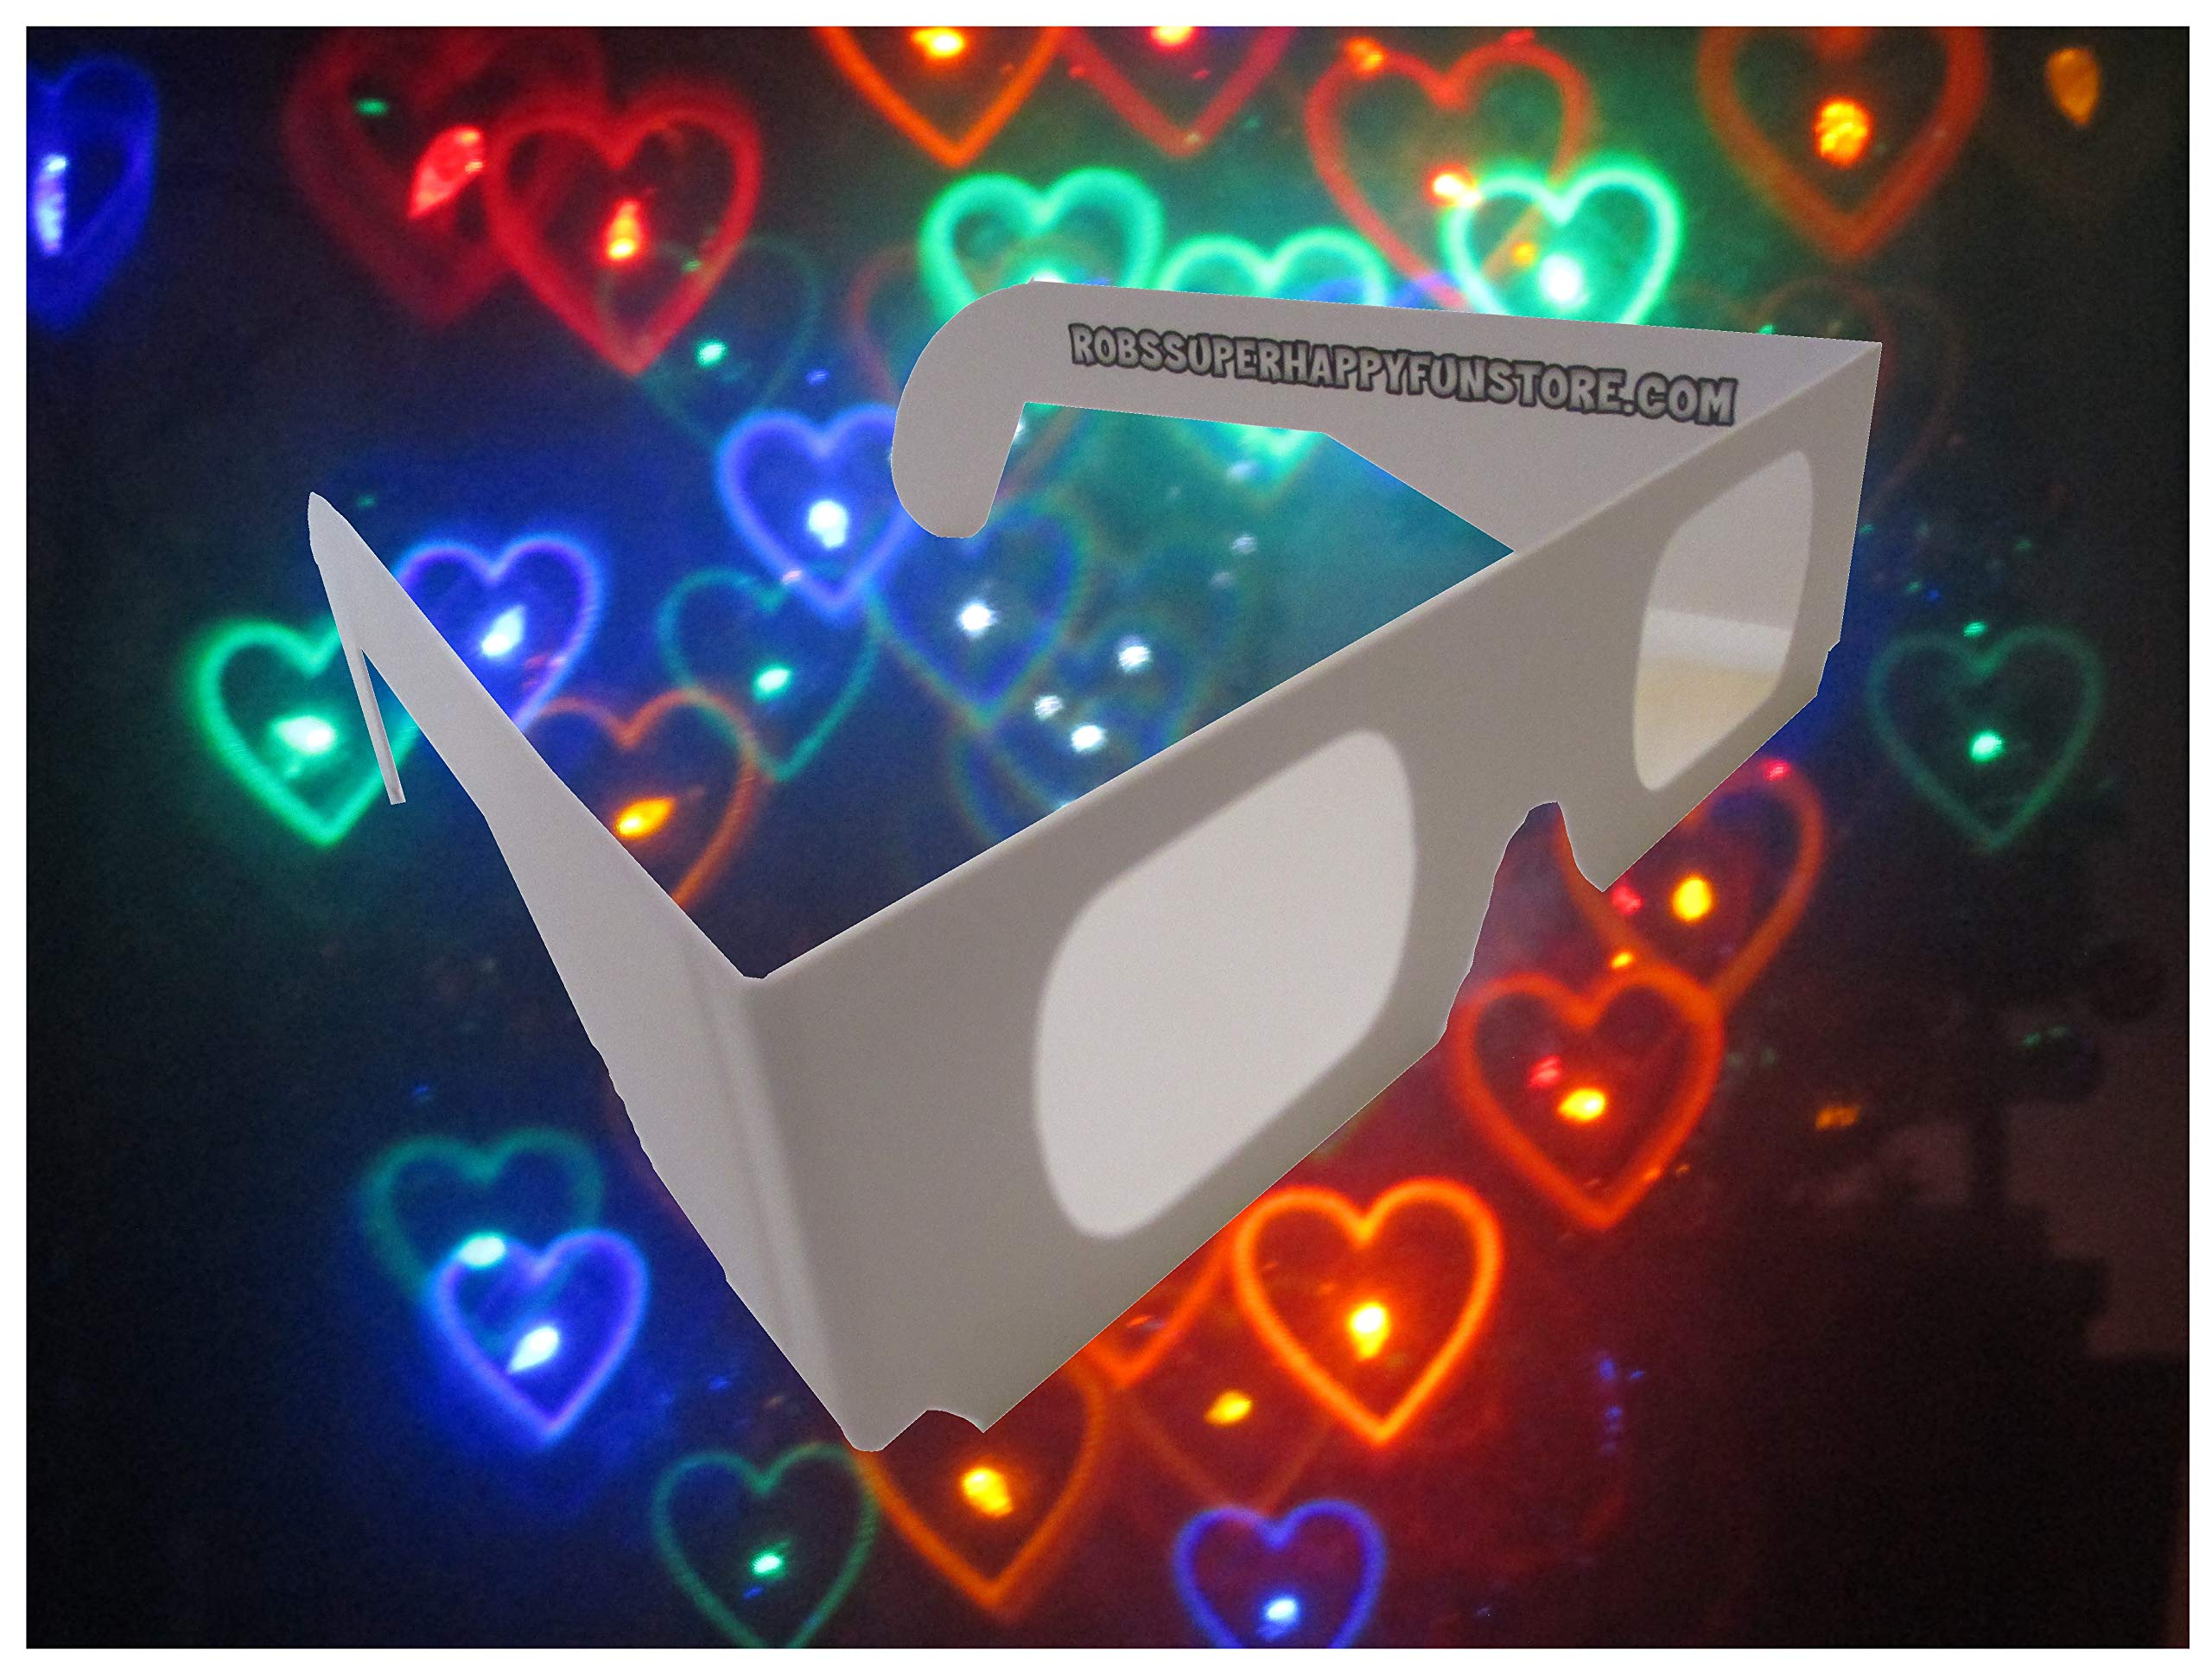 Rob's Super Happy Fun Store Rainbow Hearts Fireworks Diffraction Glasses - 50 Glasses - Paper Frames by Rob's Super Happy Fun Store